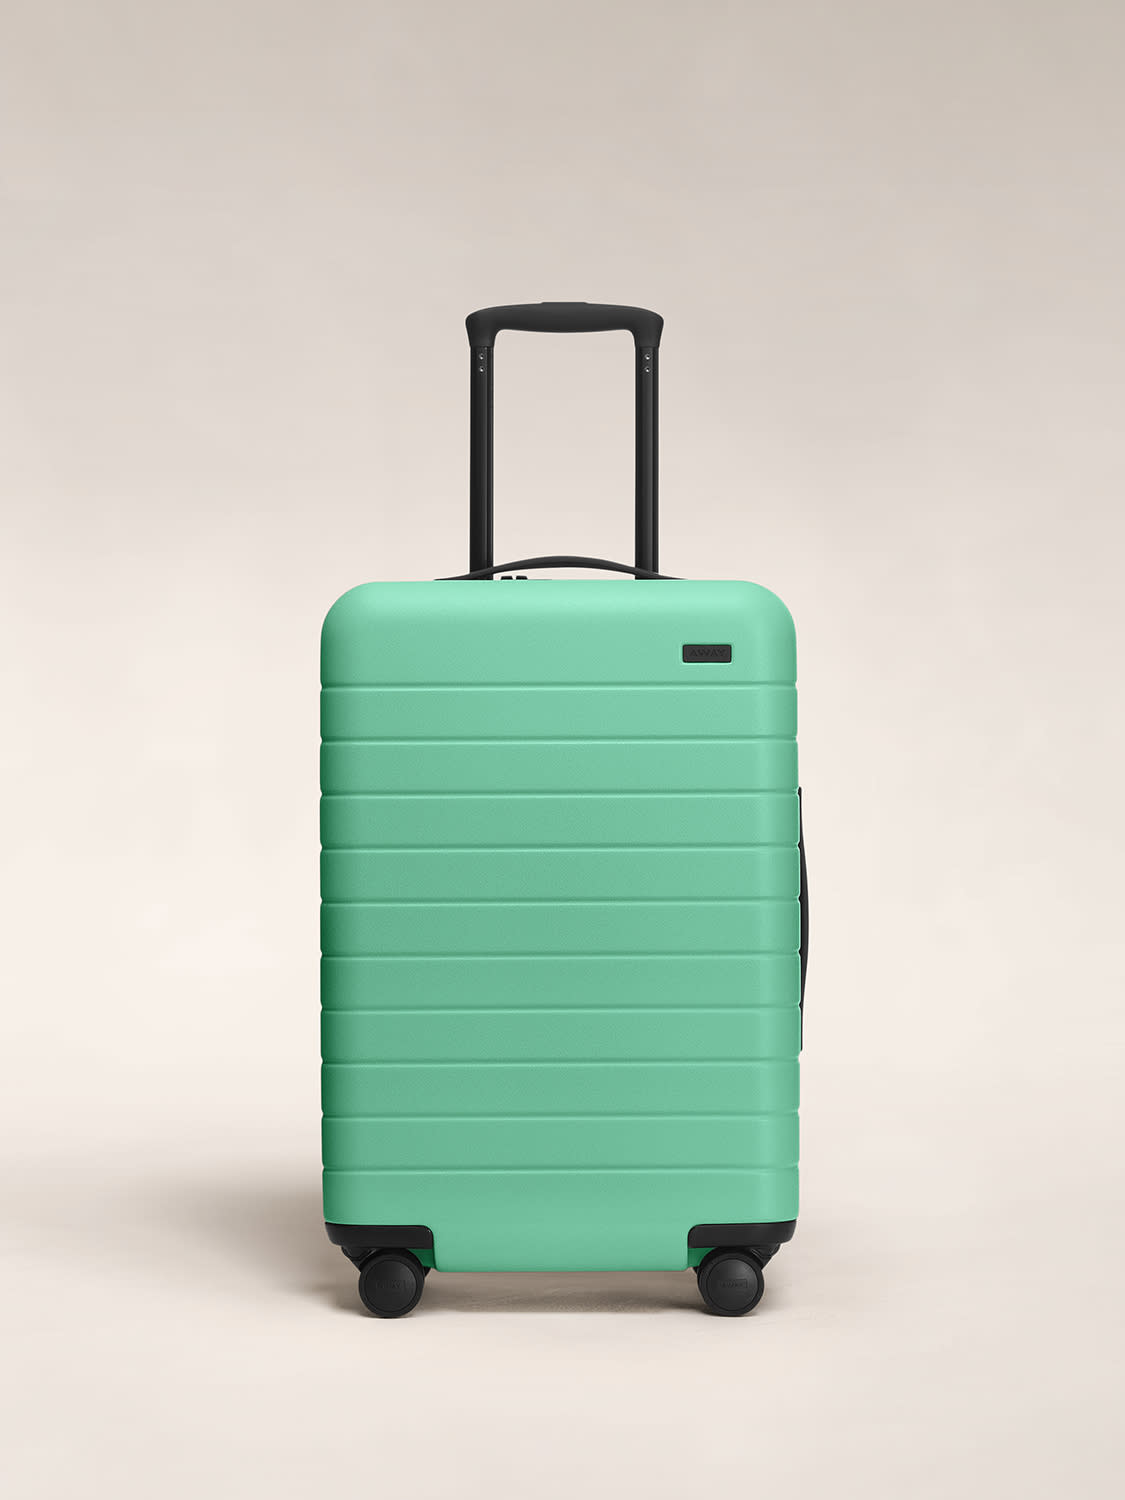 Front view of Away hardside luggage in The Bigger Carry-On size in Aqua